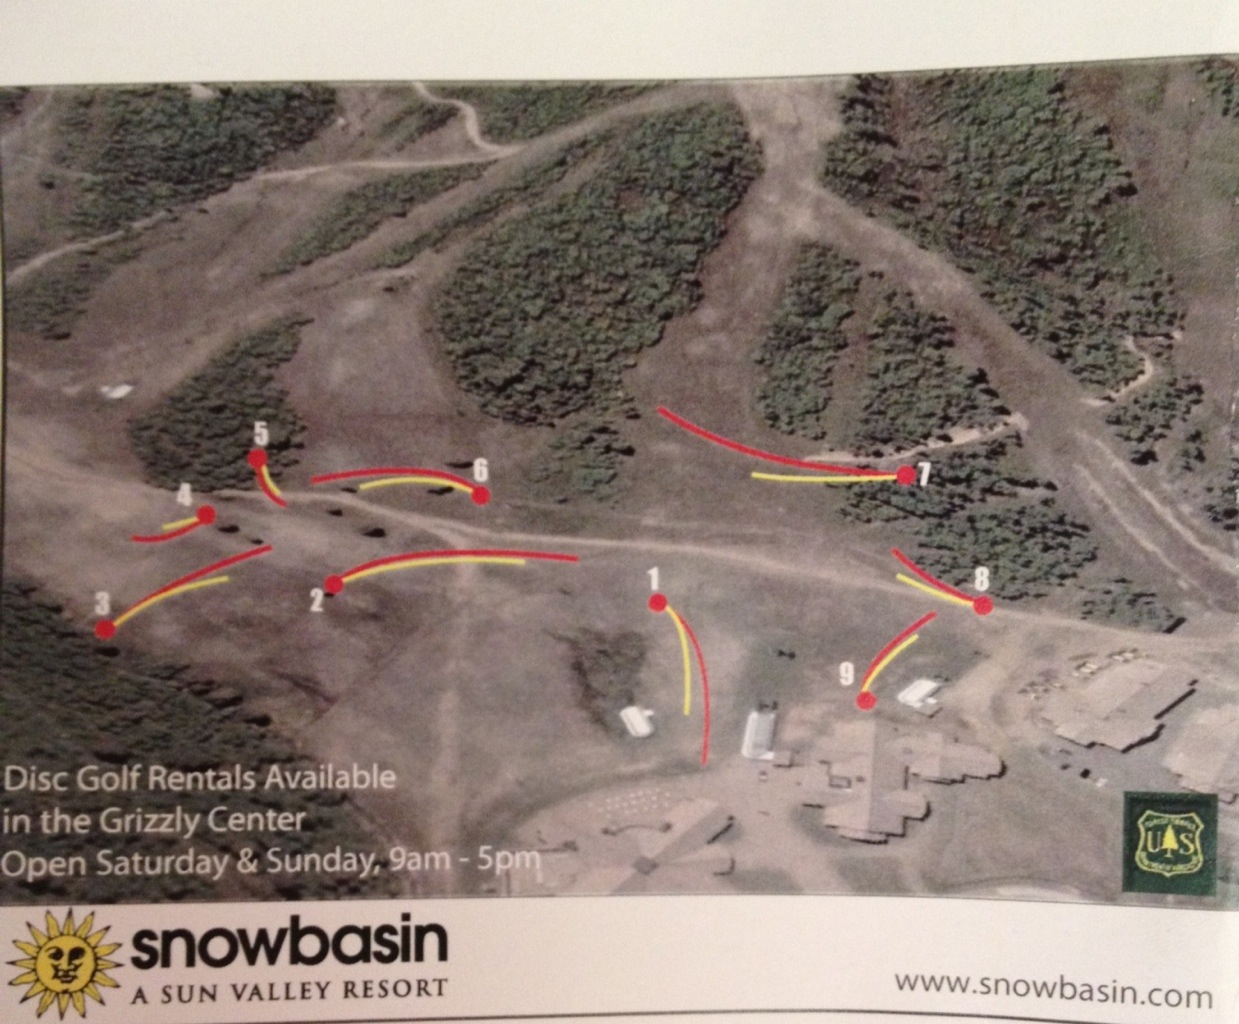 Map of Snow Basin Disc Golf Course